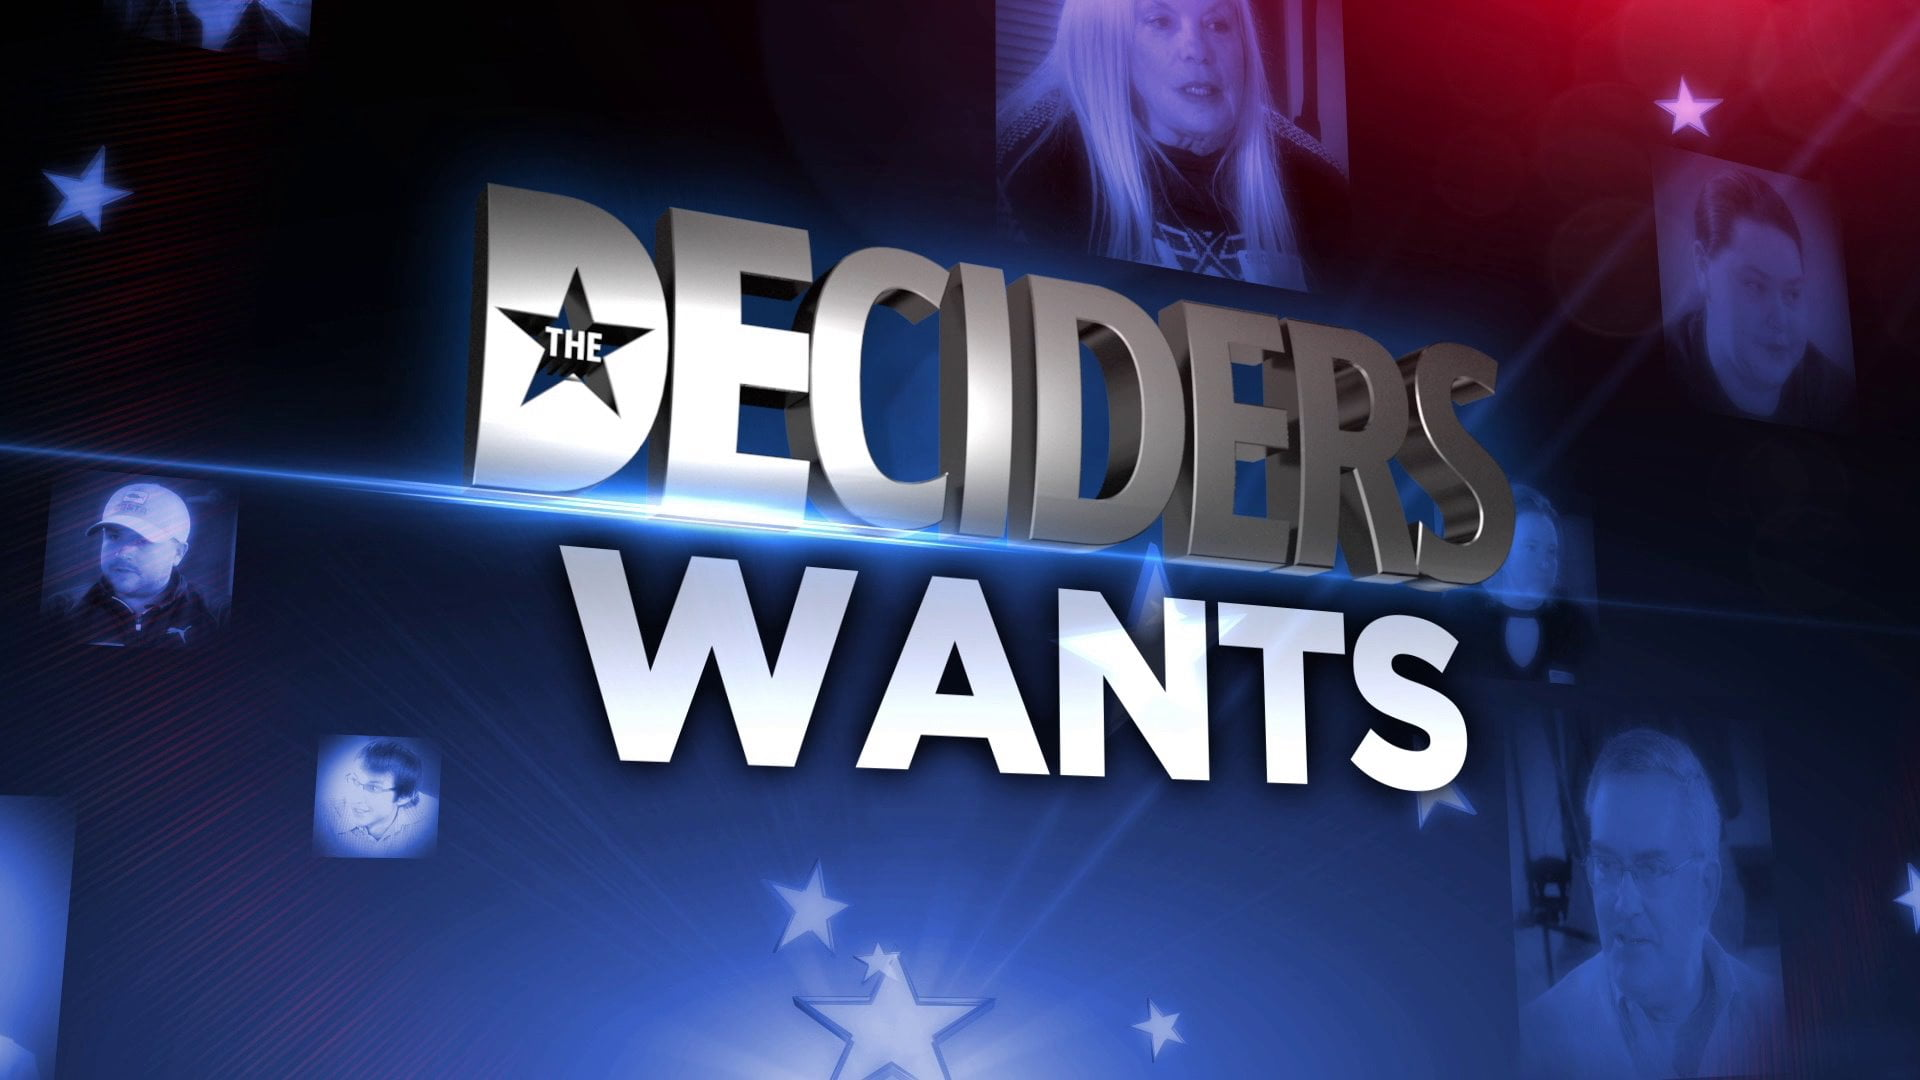 Qualities 'The Deciders' Want Most in a Presidential Candidate 1